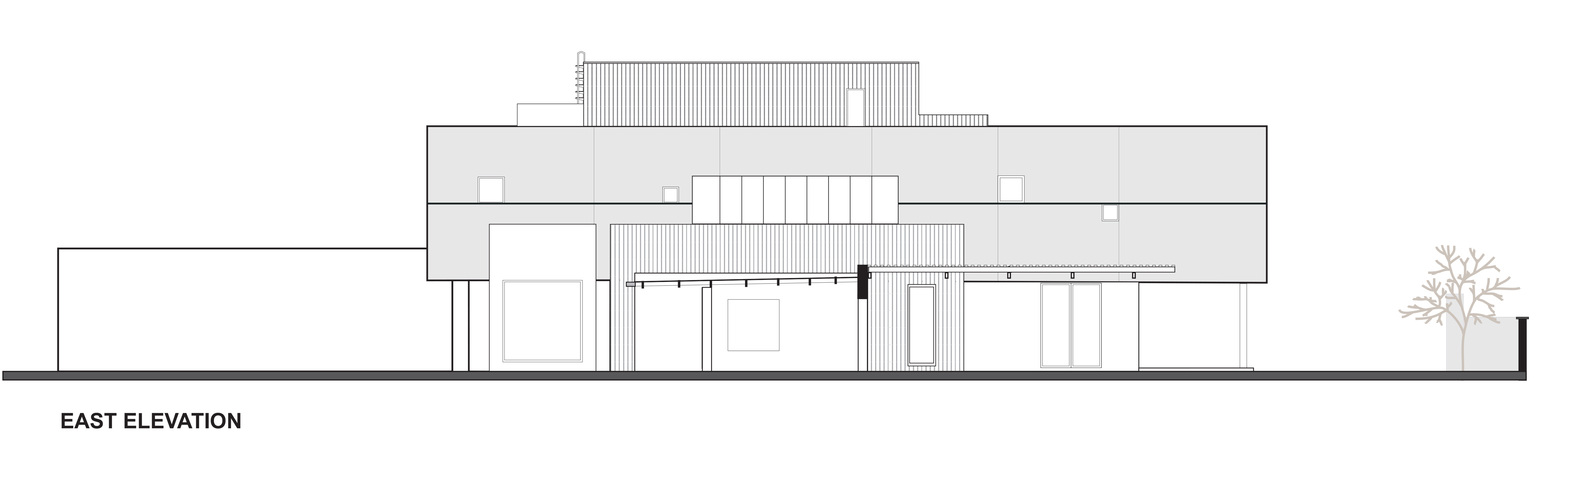 medium resolution of the wolf house east elevation